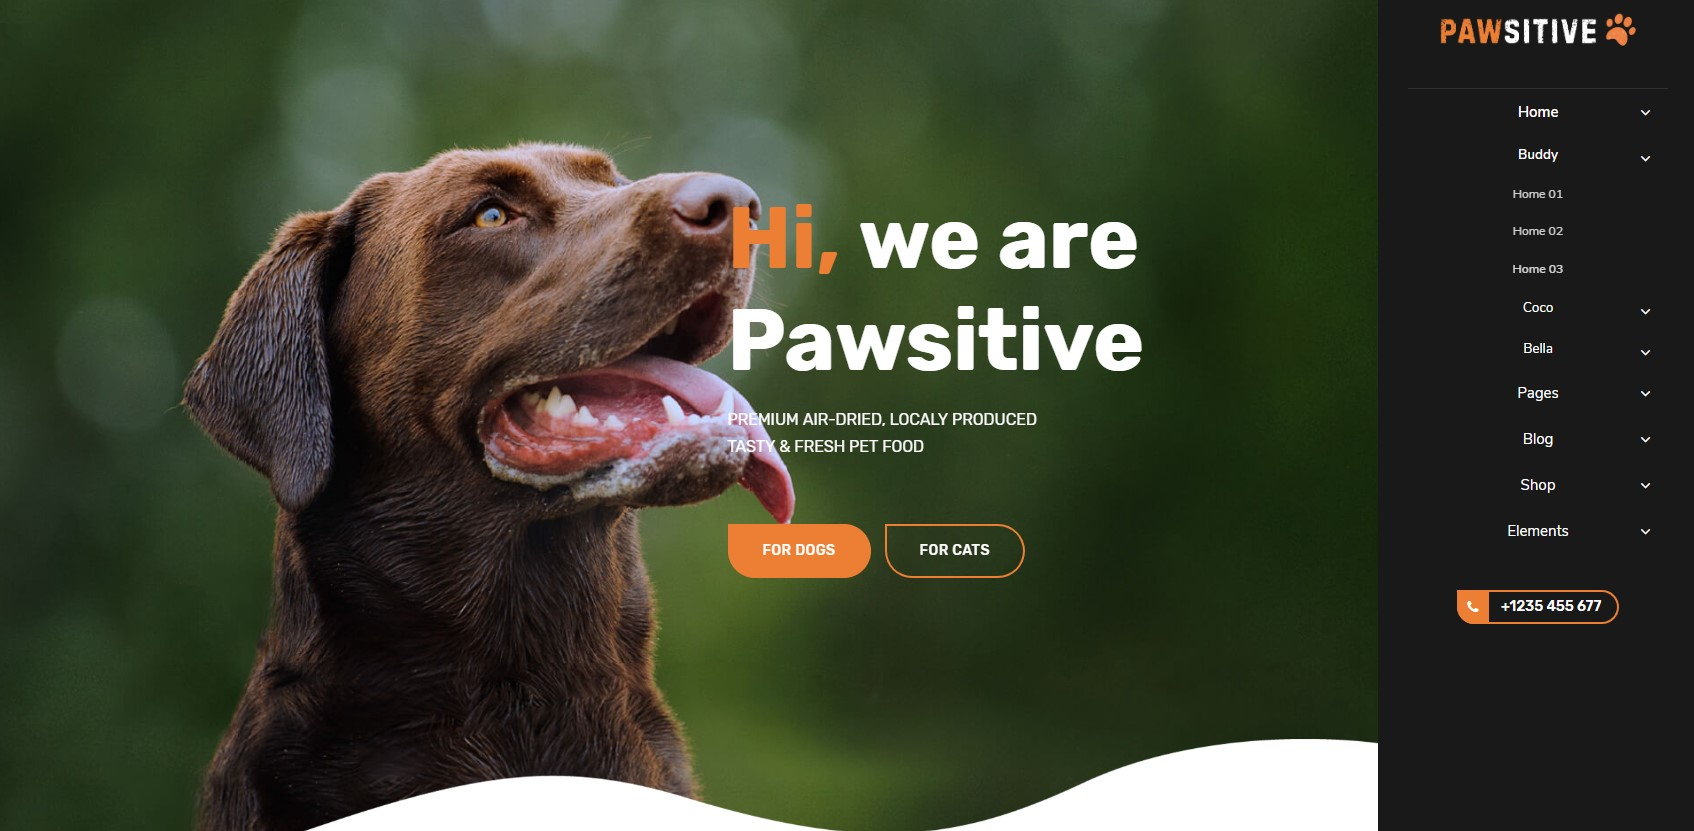 https://documentation.bold-themes.com/pawsitive/wp-content/uploads/sites/45/2019/08/menu-vertical-right.jpg